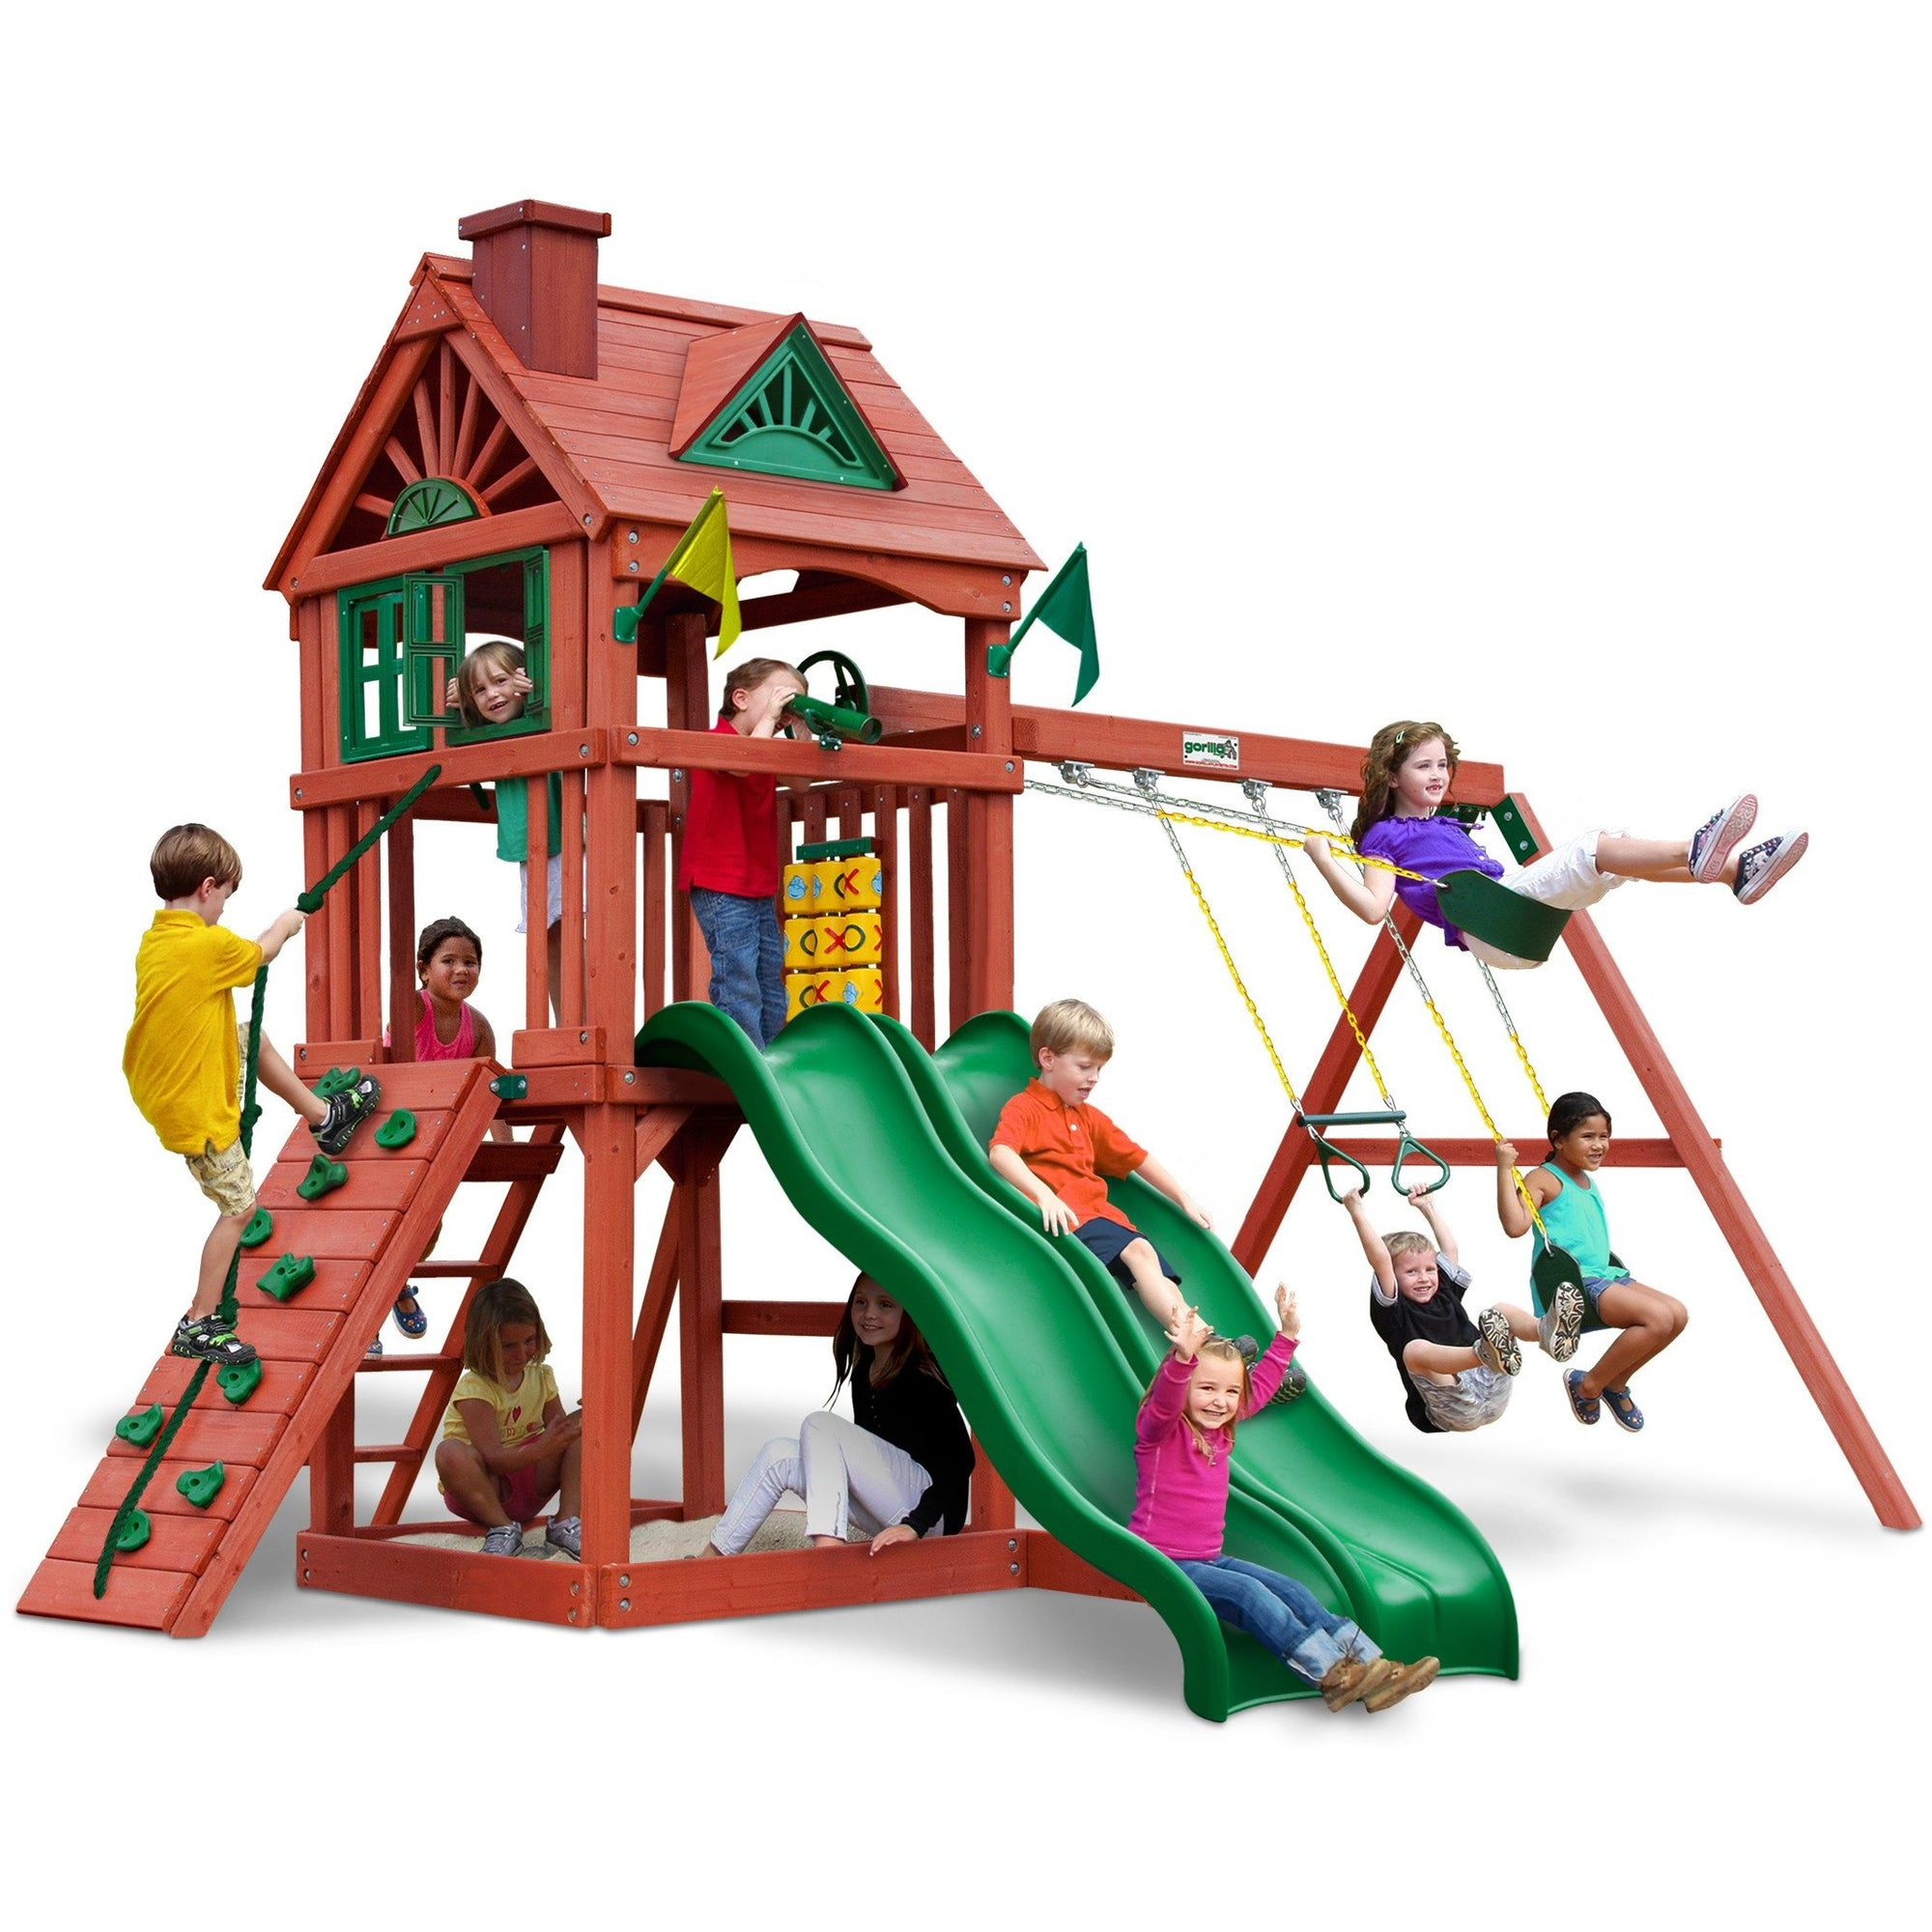 Double Down Gorilla Playset 01-0036 - Swings and More